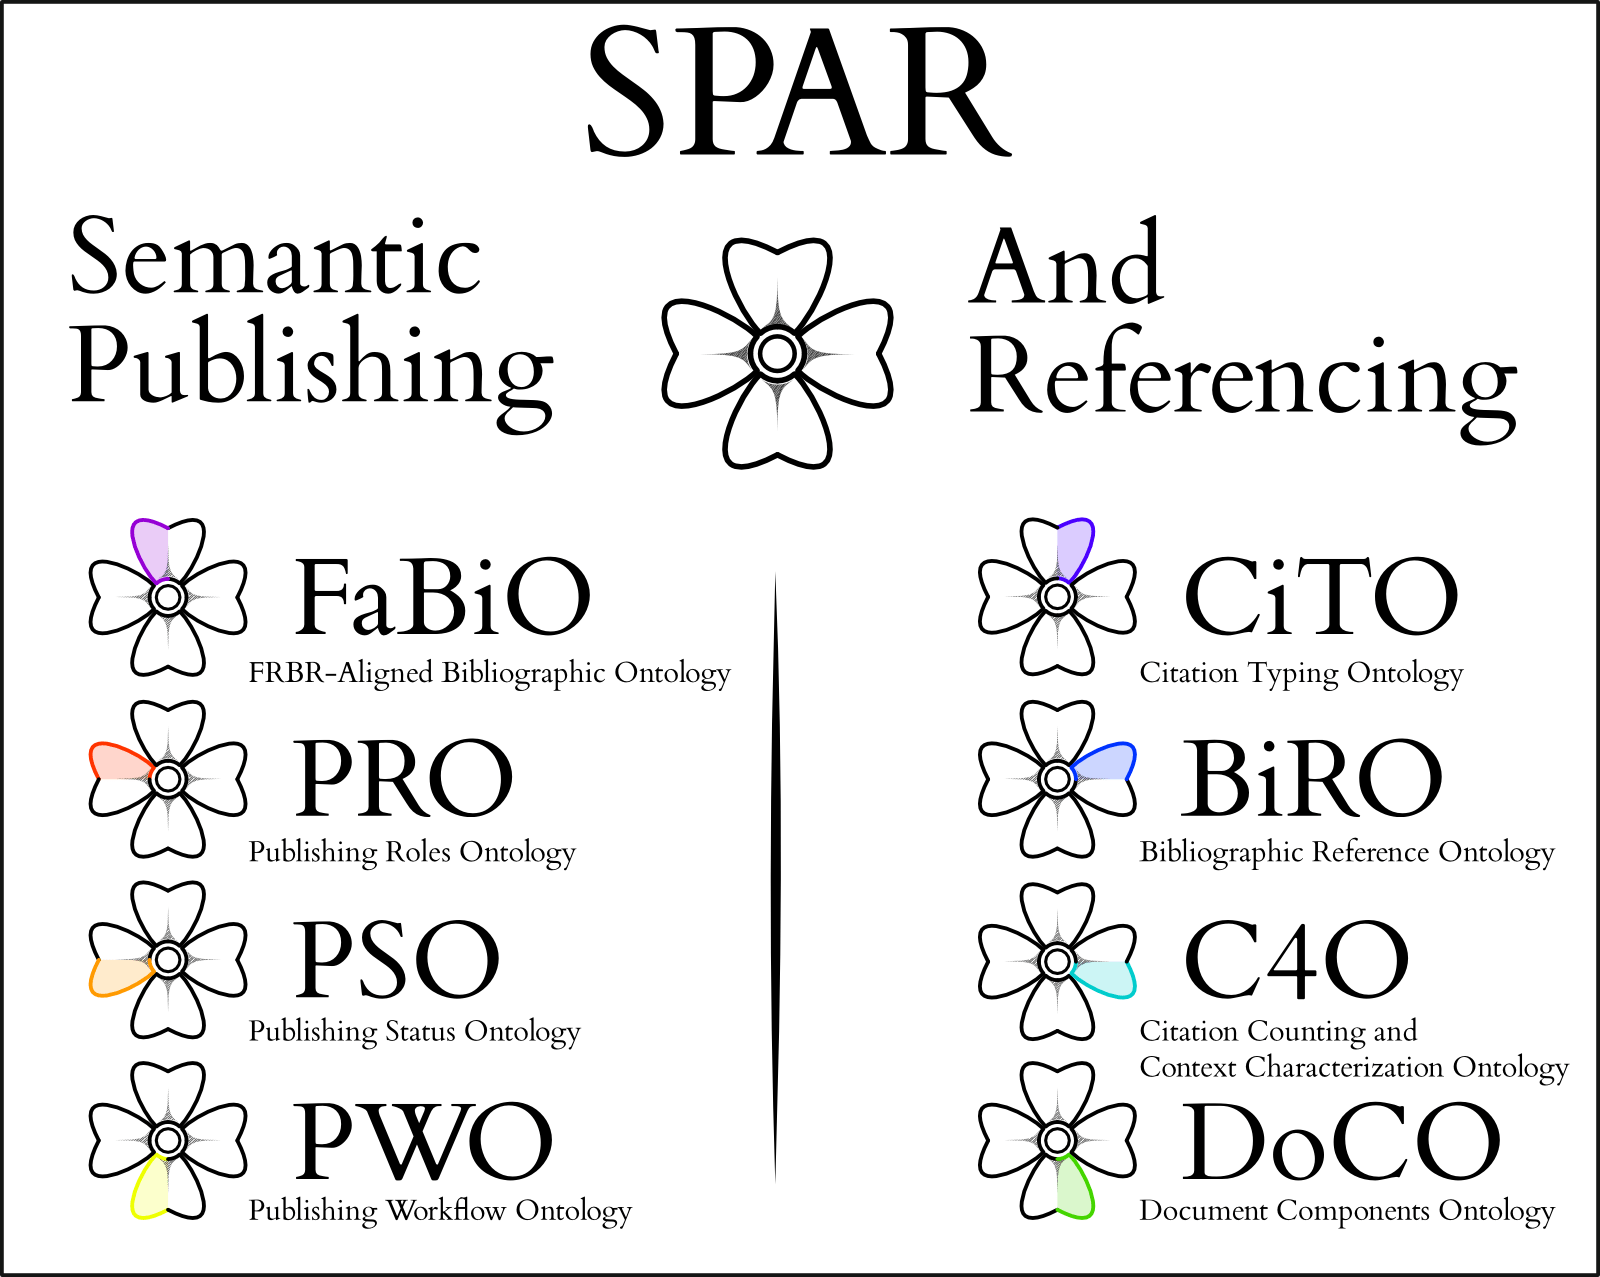 Introducing The Semantic Publishing And Referencing Spar